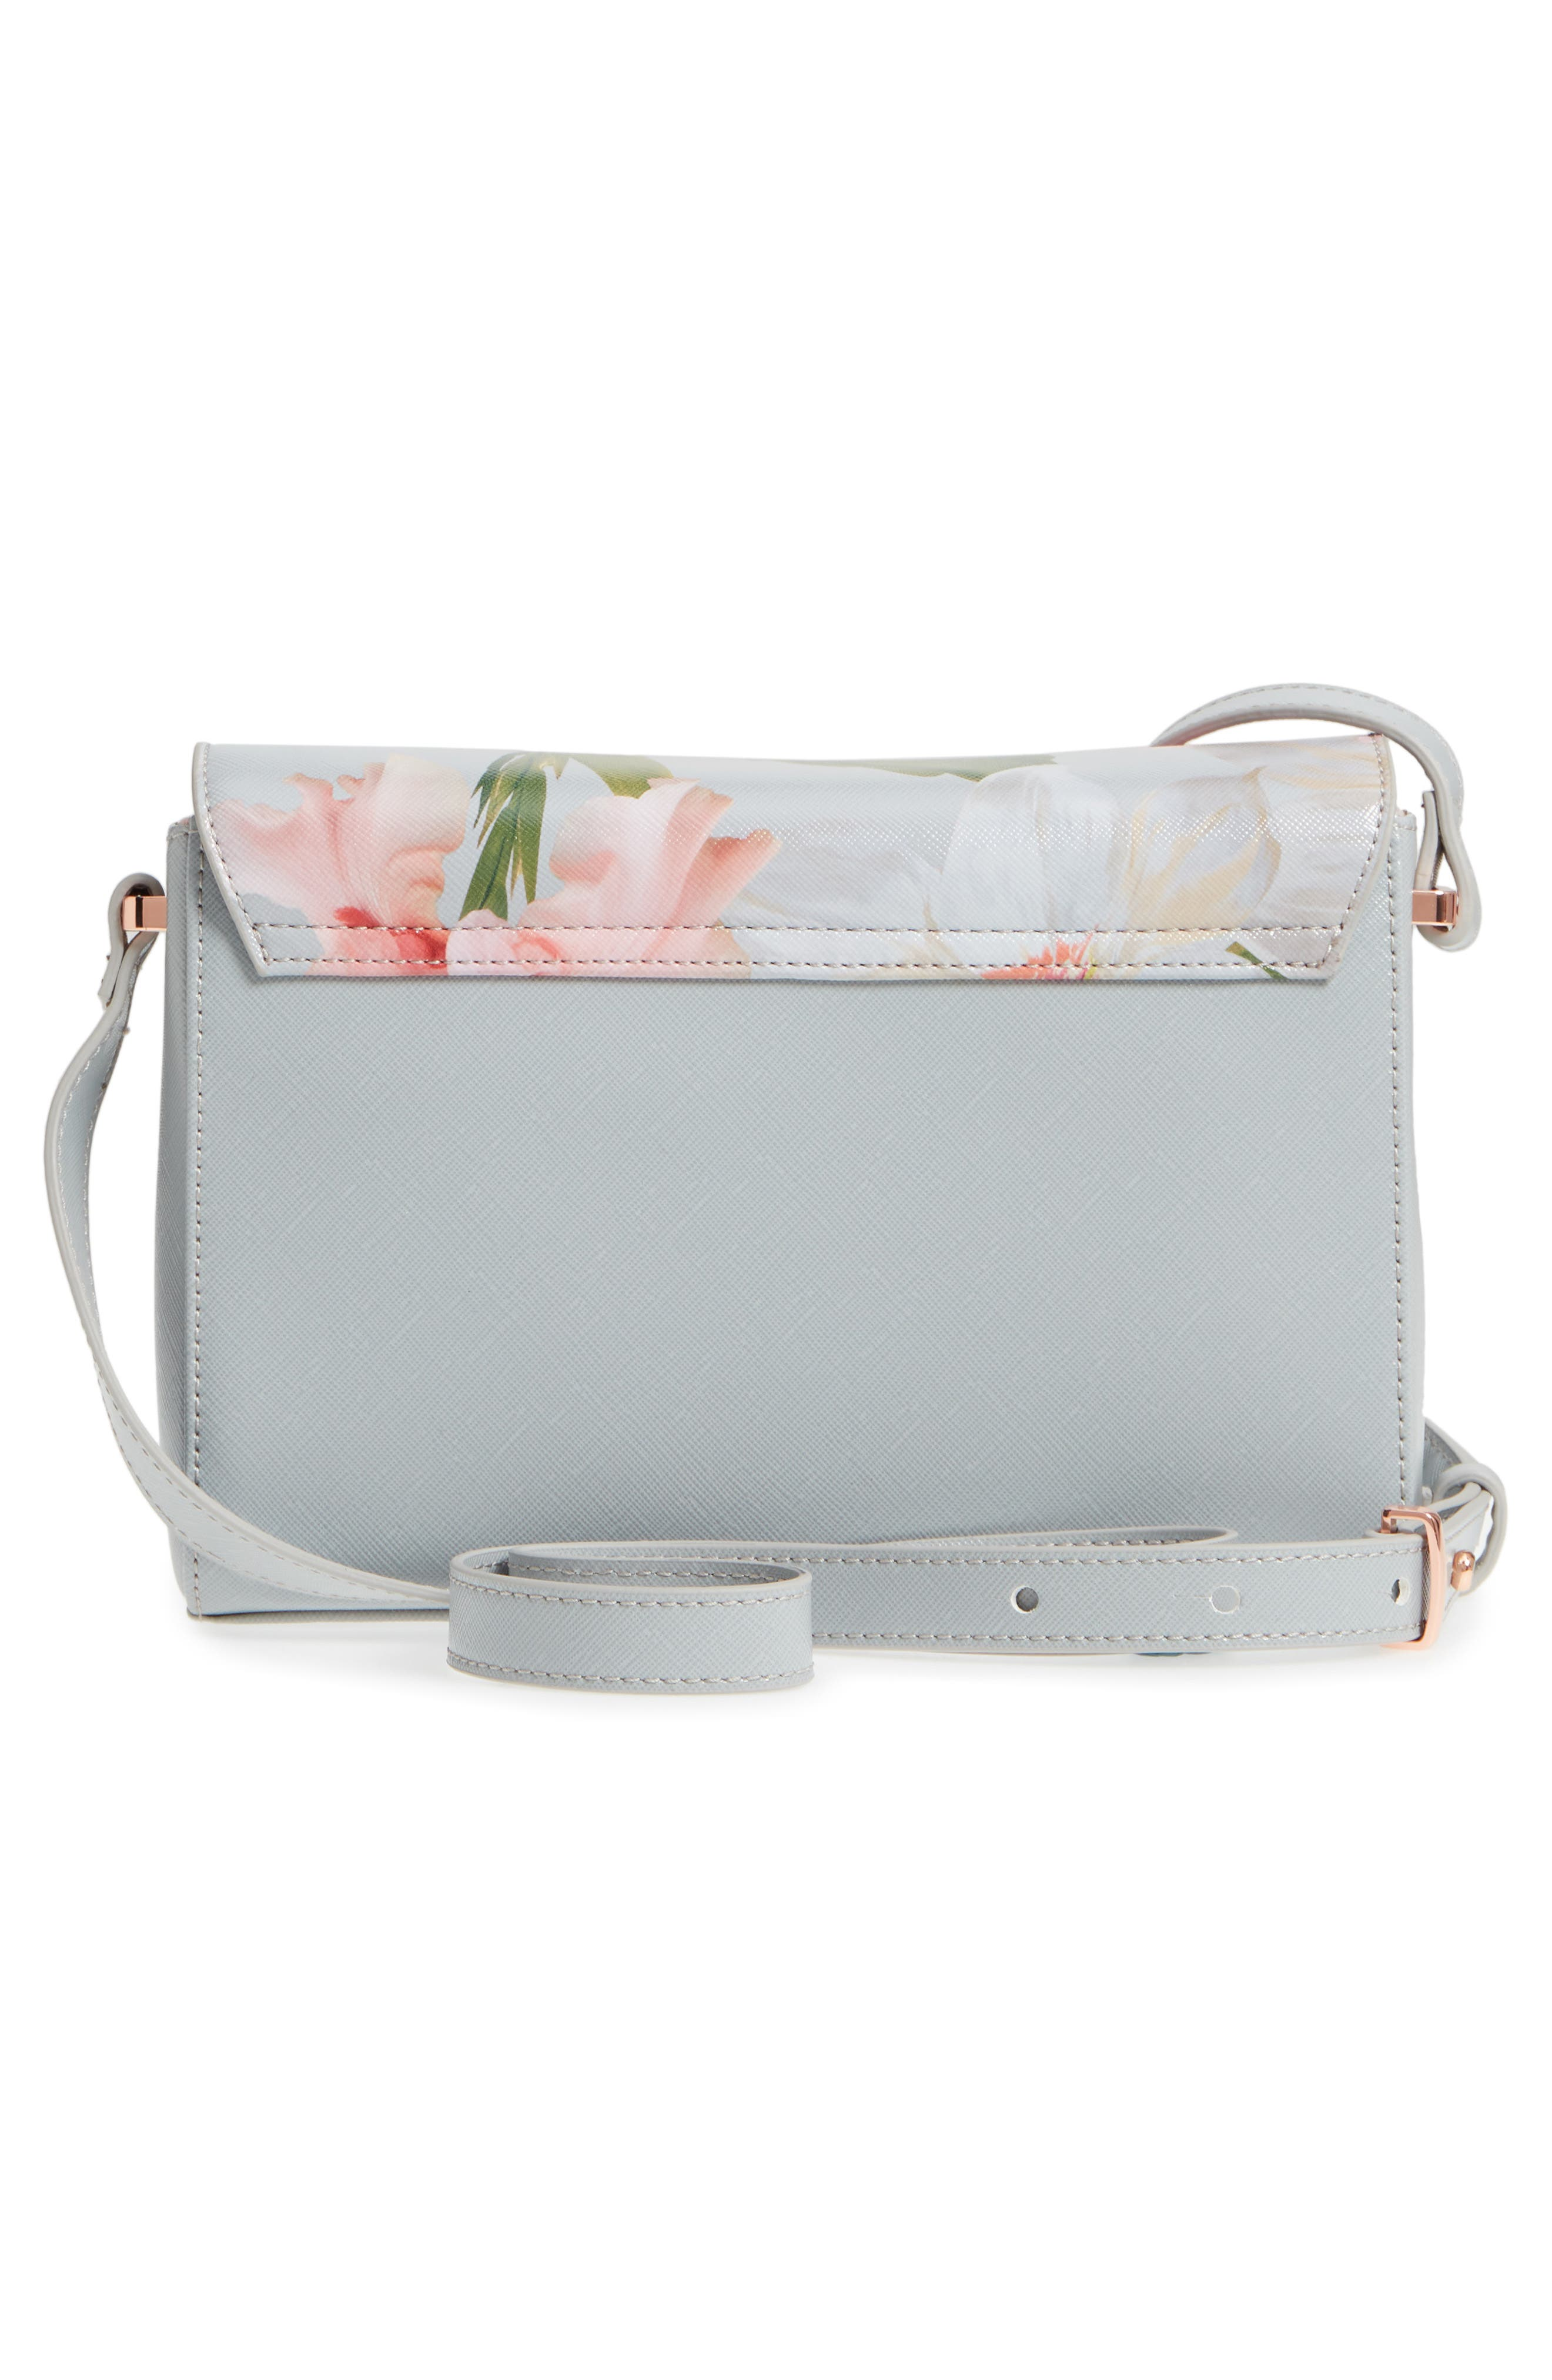 Prim Chatsworth Bloom Faux Leather Crossbody Bag,                             Alternate thumbnail 3, color,                             Mid Grey